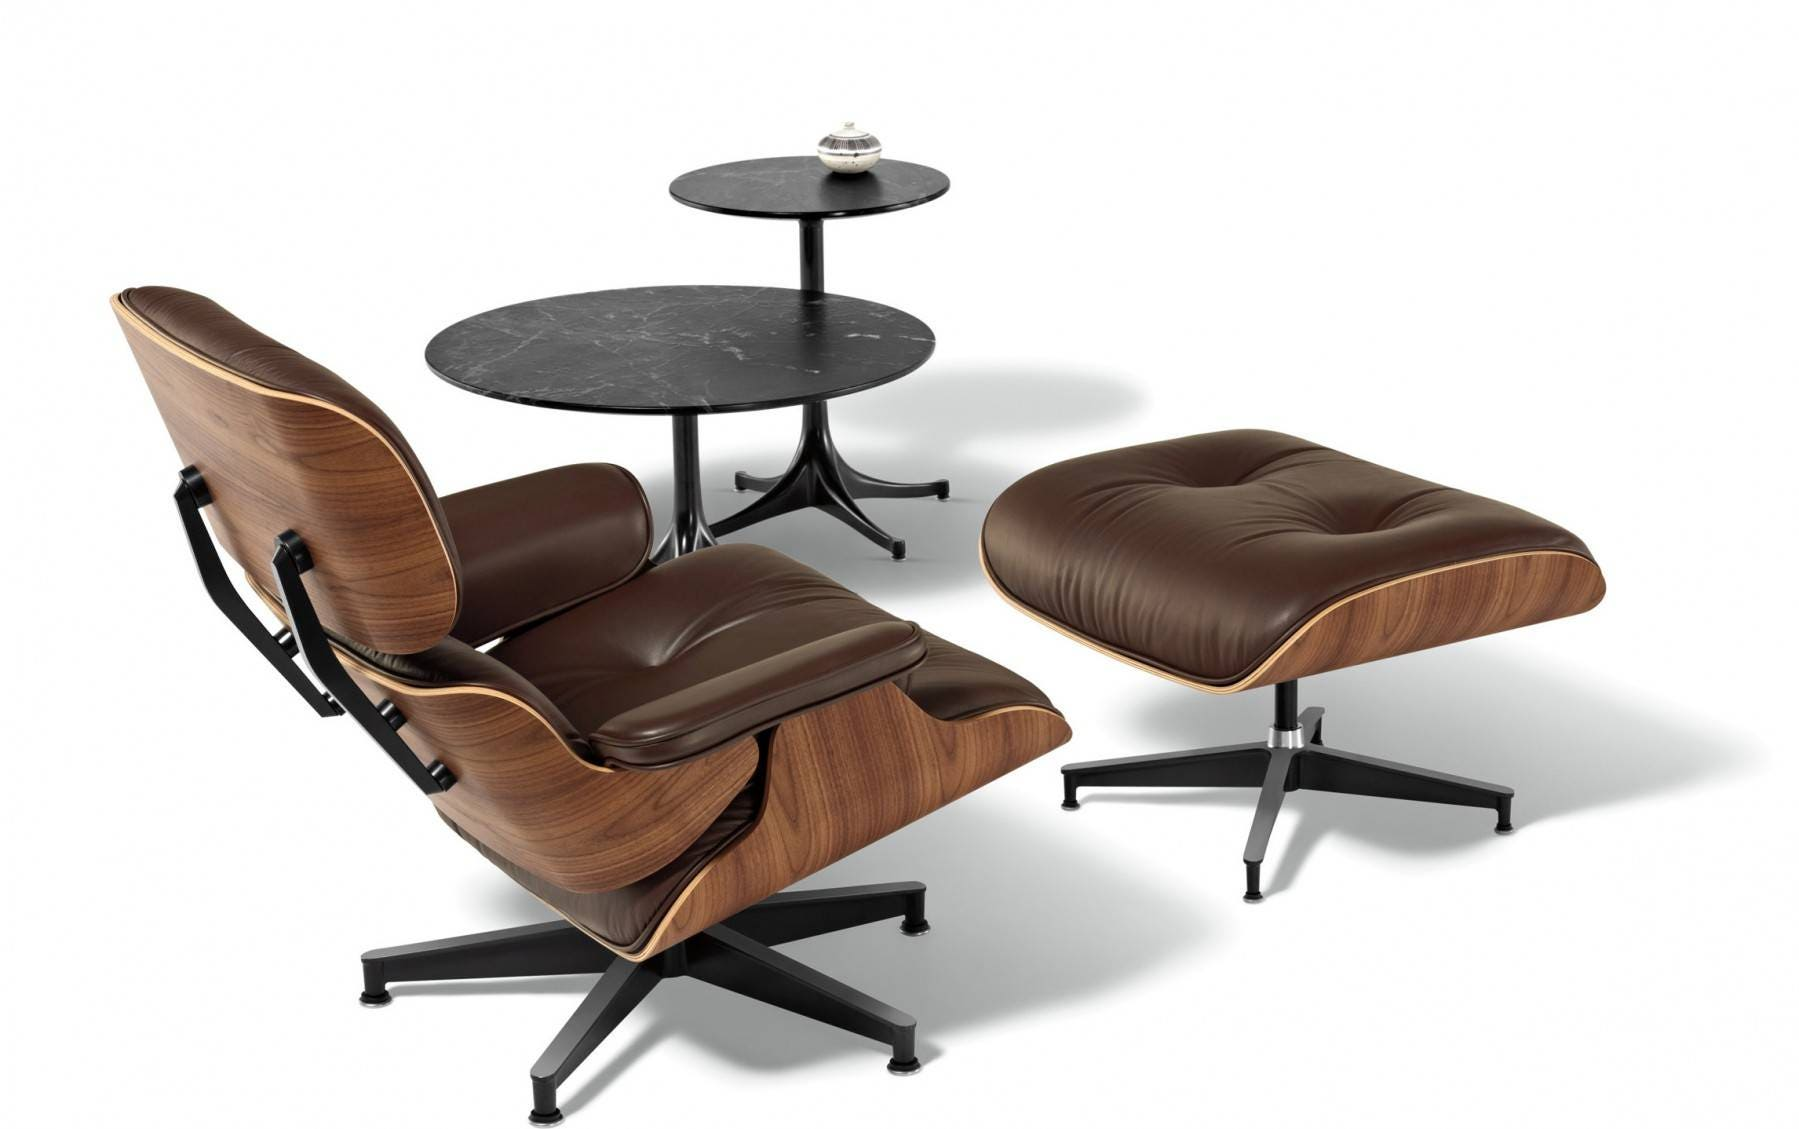 Eames chair toronto replica chairs seating - Eames lounge chair and ottoman reproduction ...